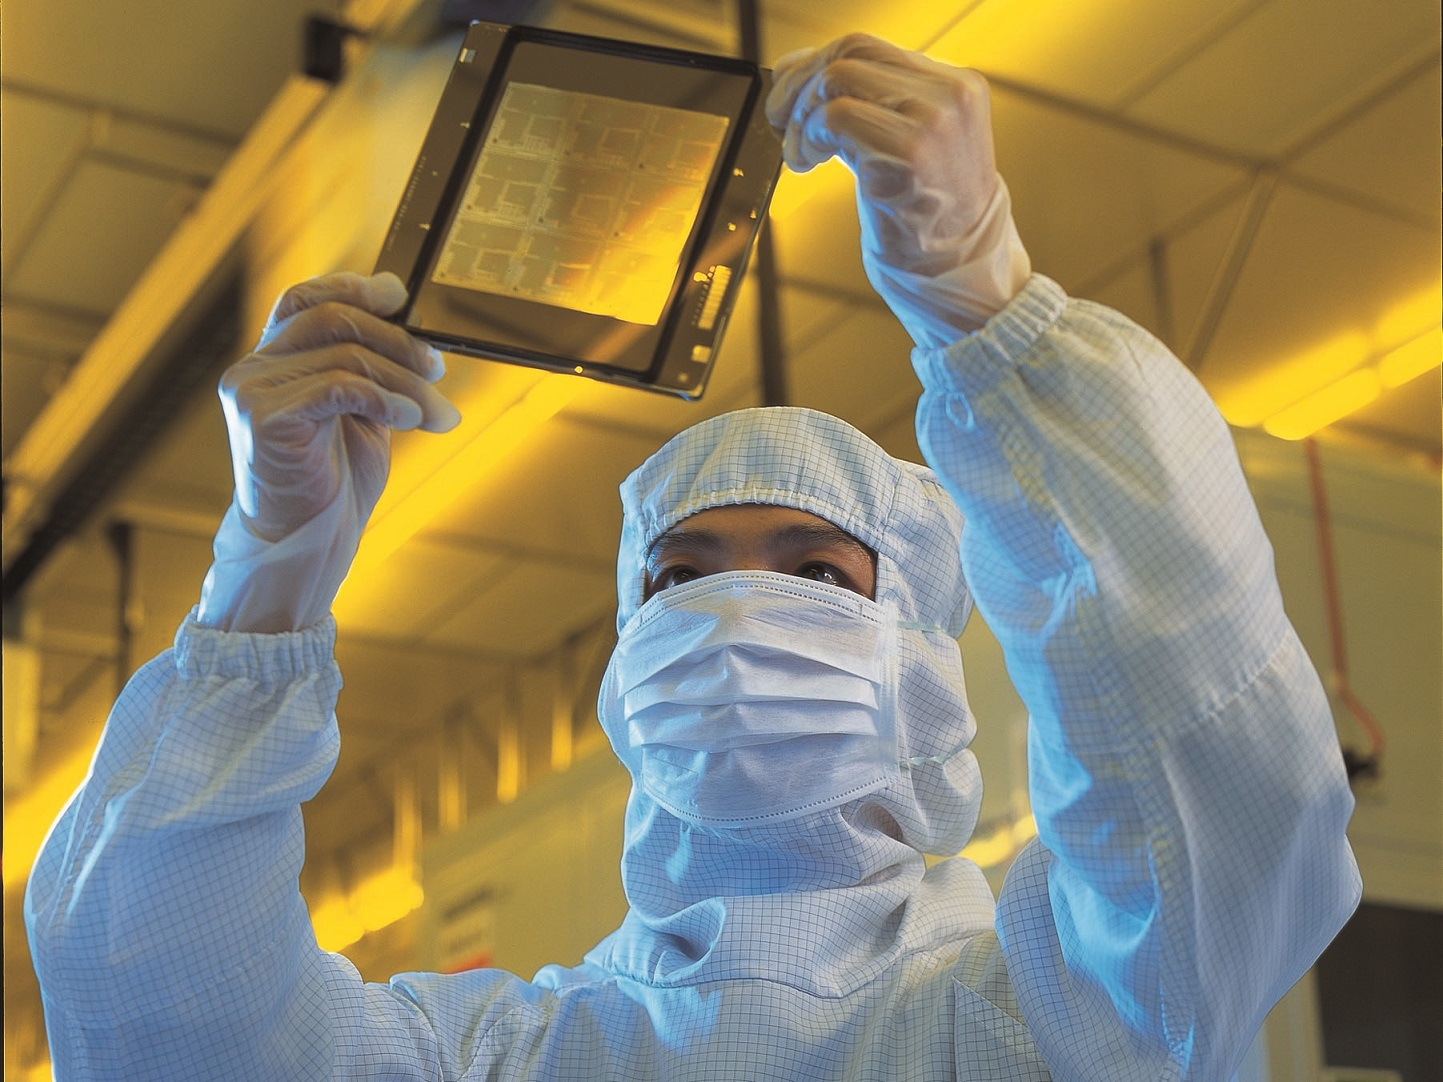 TSMC Already Working on 5nm, 3nm, and Planning 2nm Process Nodes